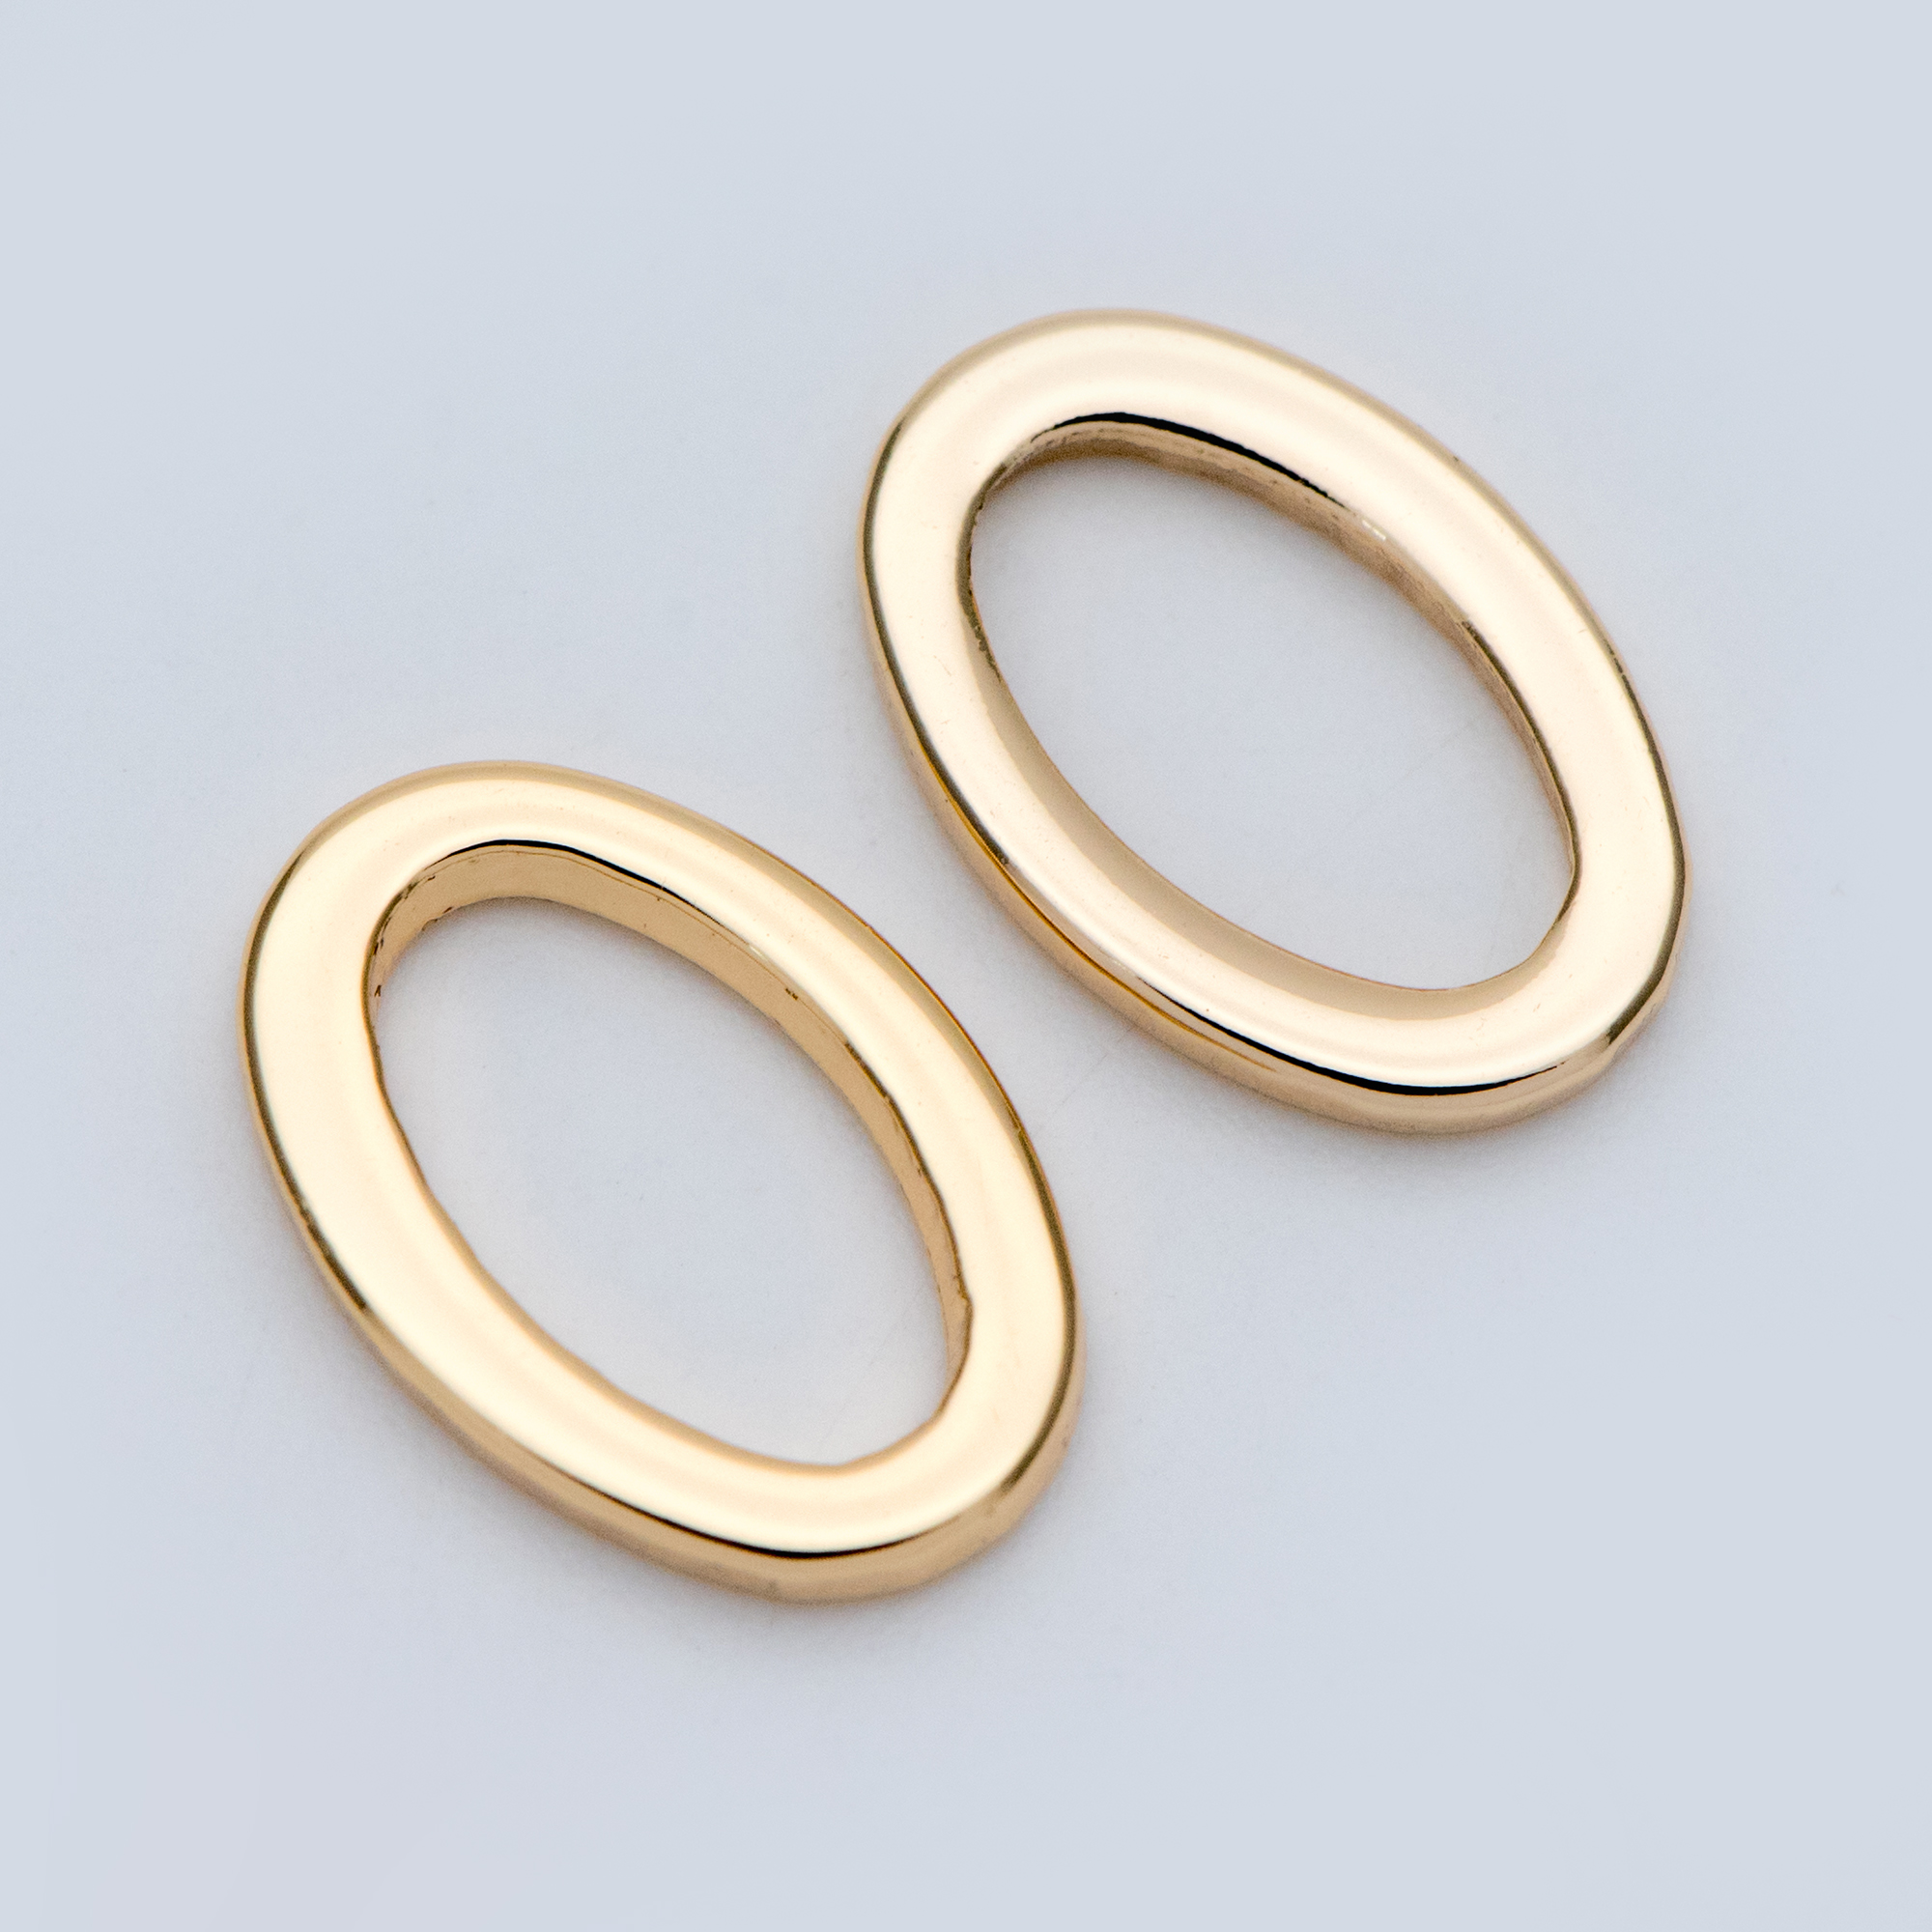 25 Oval Linking Rings Large Brass Connnector Rings Silver Tone 16mm x 9mm